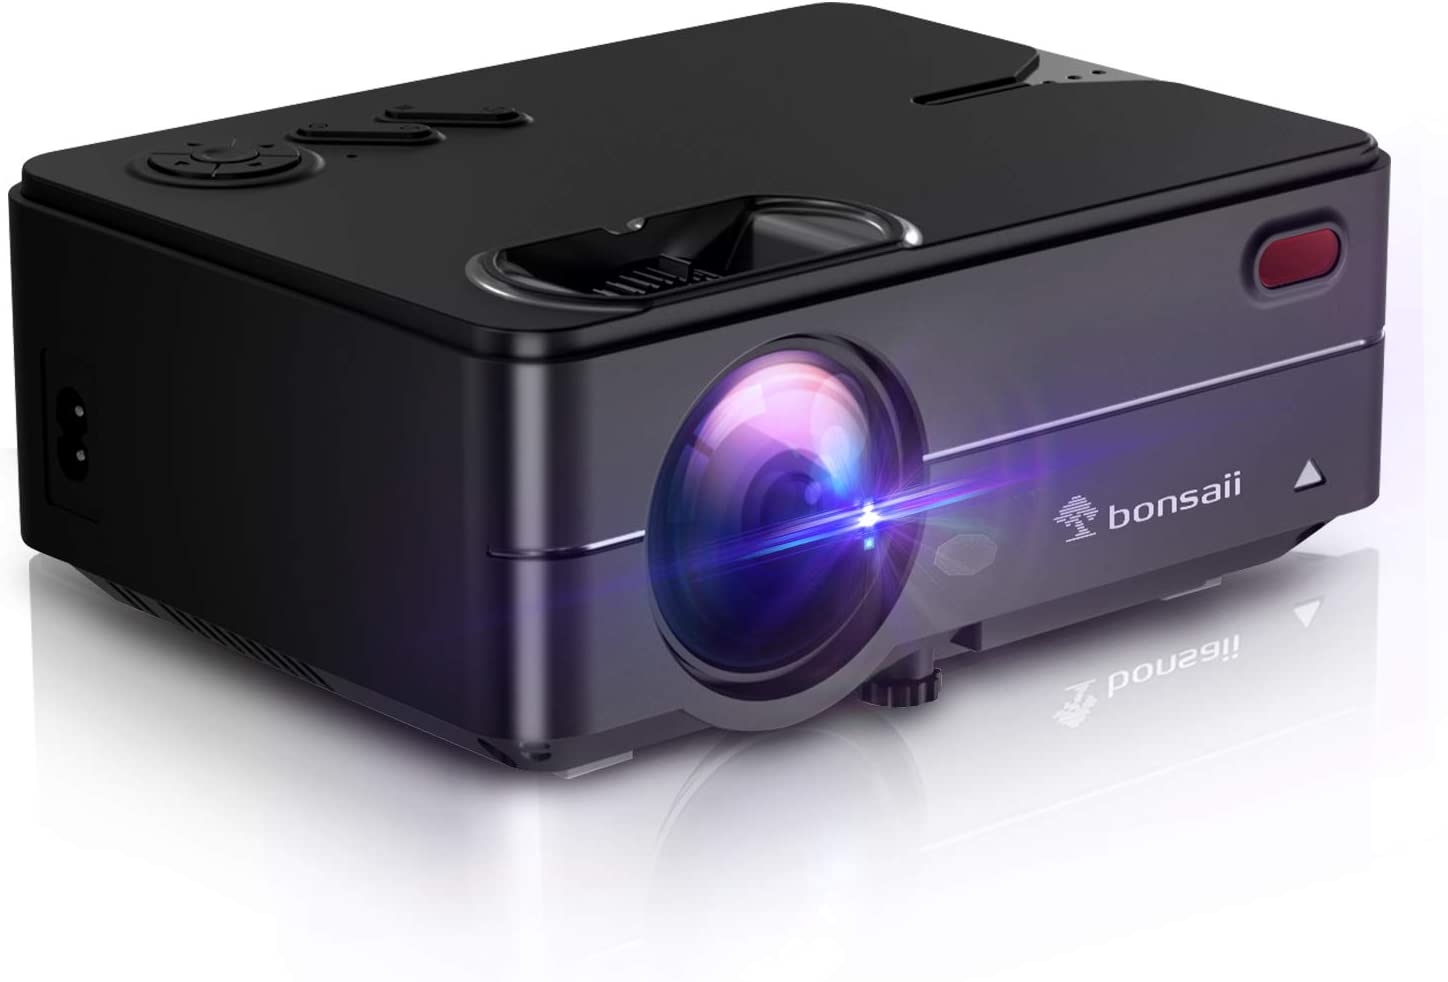 "Mini Projector for Outdoor Movies, Portable Projector Support 1080P 120"" Display Home Theater Movie Projector with 50,000 Hrs LED Lamp Life, Compatible with TV Stick, PS4, PC, HDMI, VGA, AV and USB"